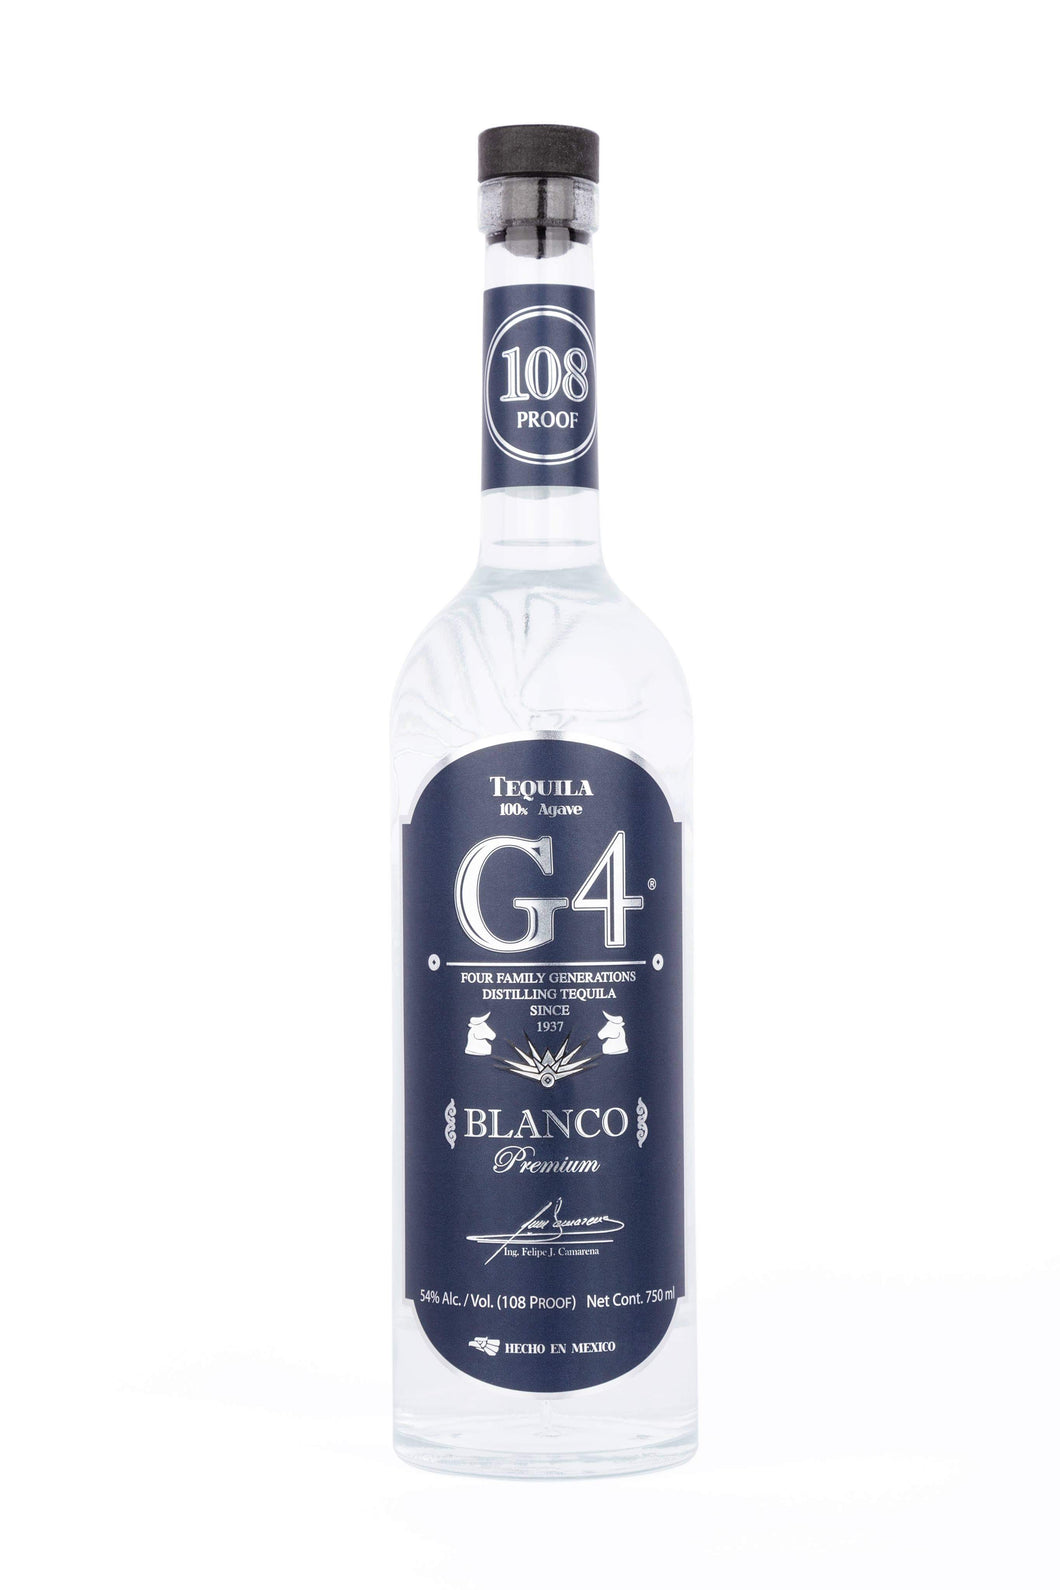 Tequila G4 Blanco 108 HIGH PROOF 100% Agave - 750ml